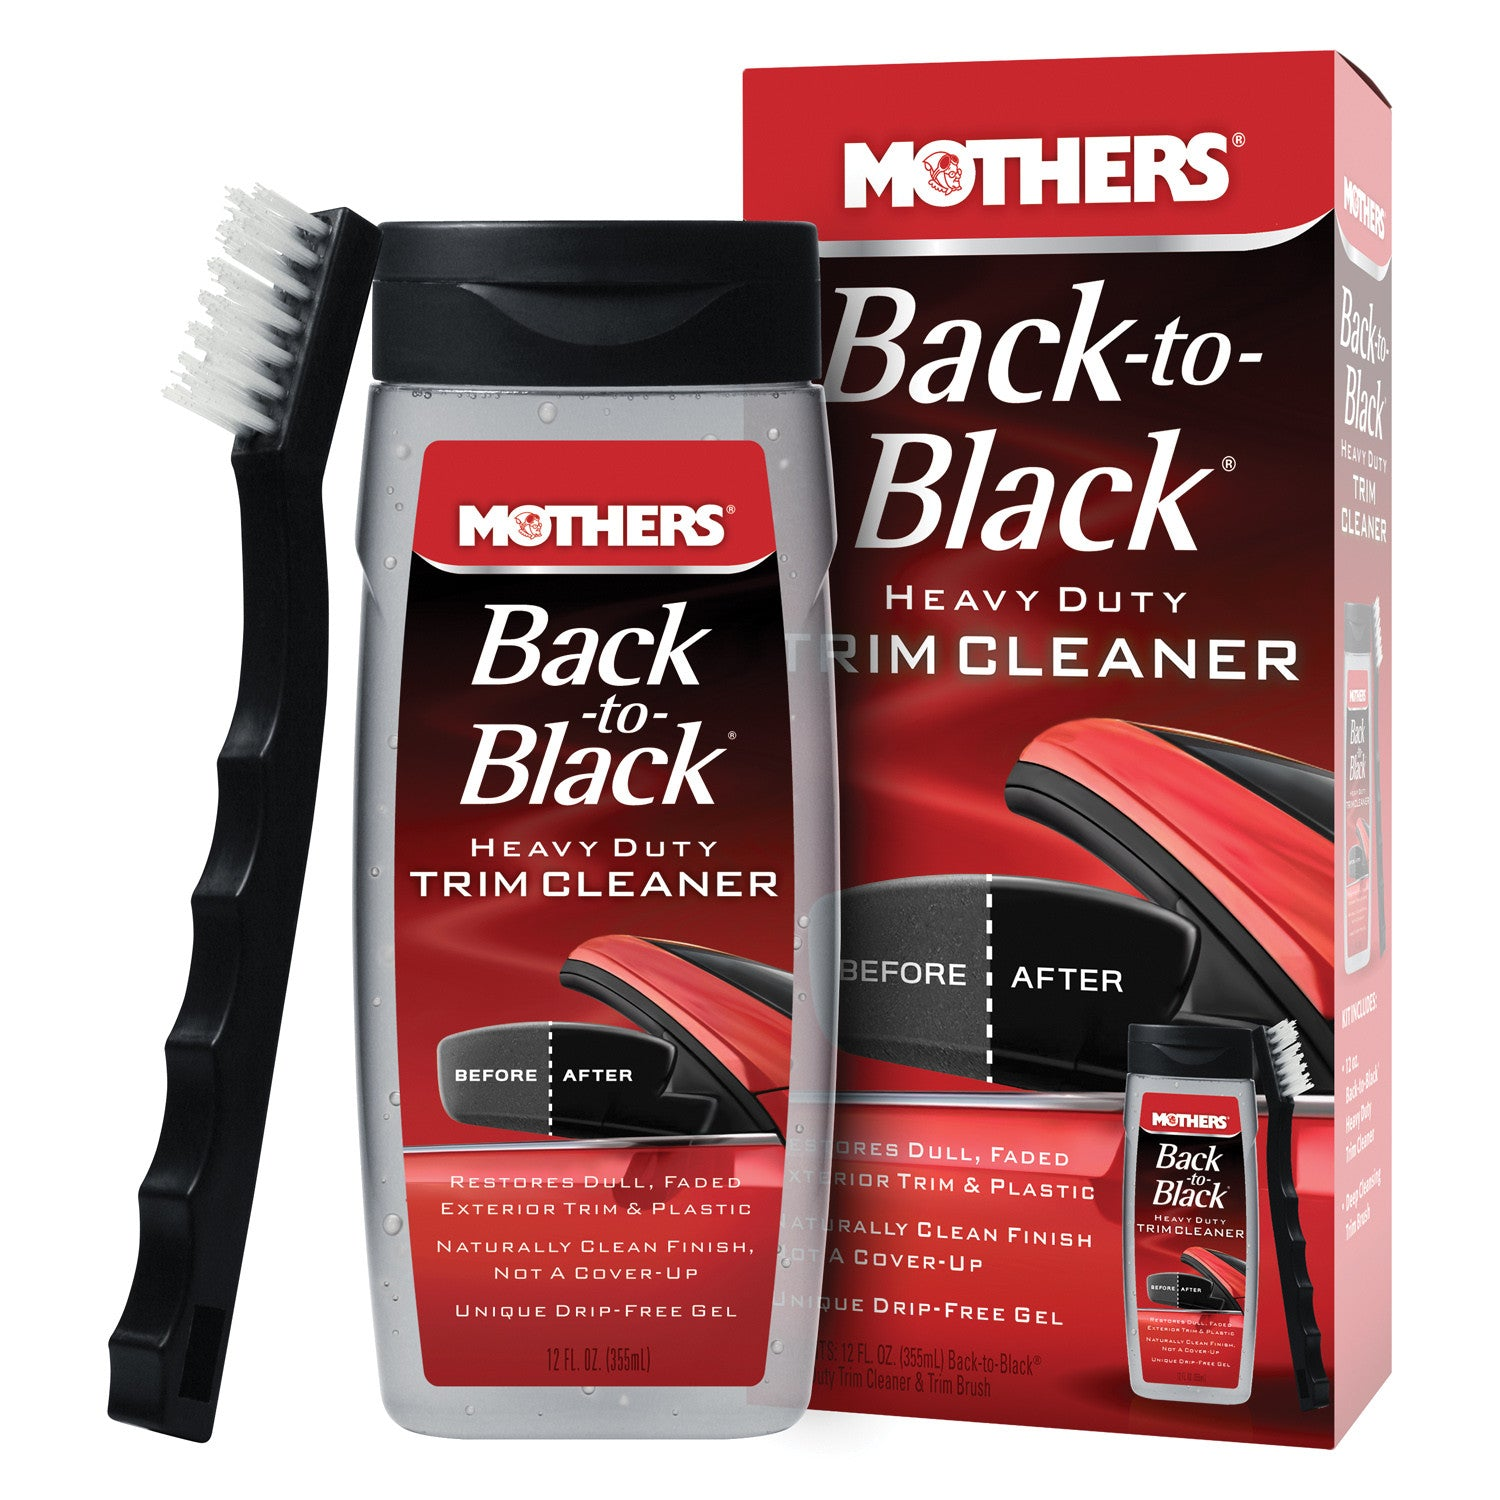 Mothers Back to Black Heavy Duty Trim Cleaner Kit 12 oz.